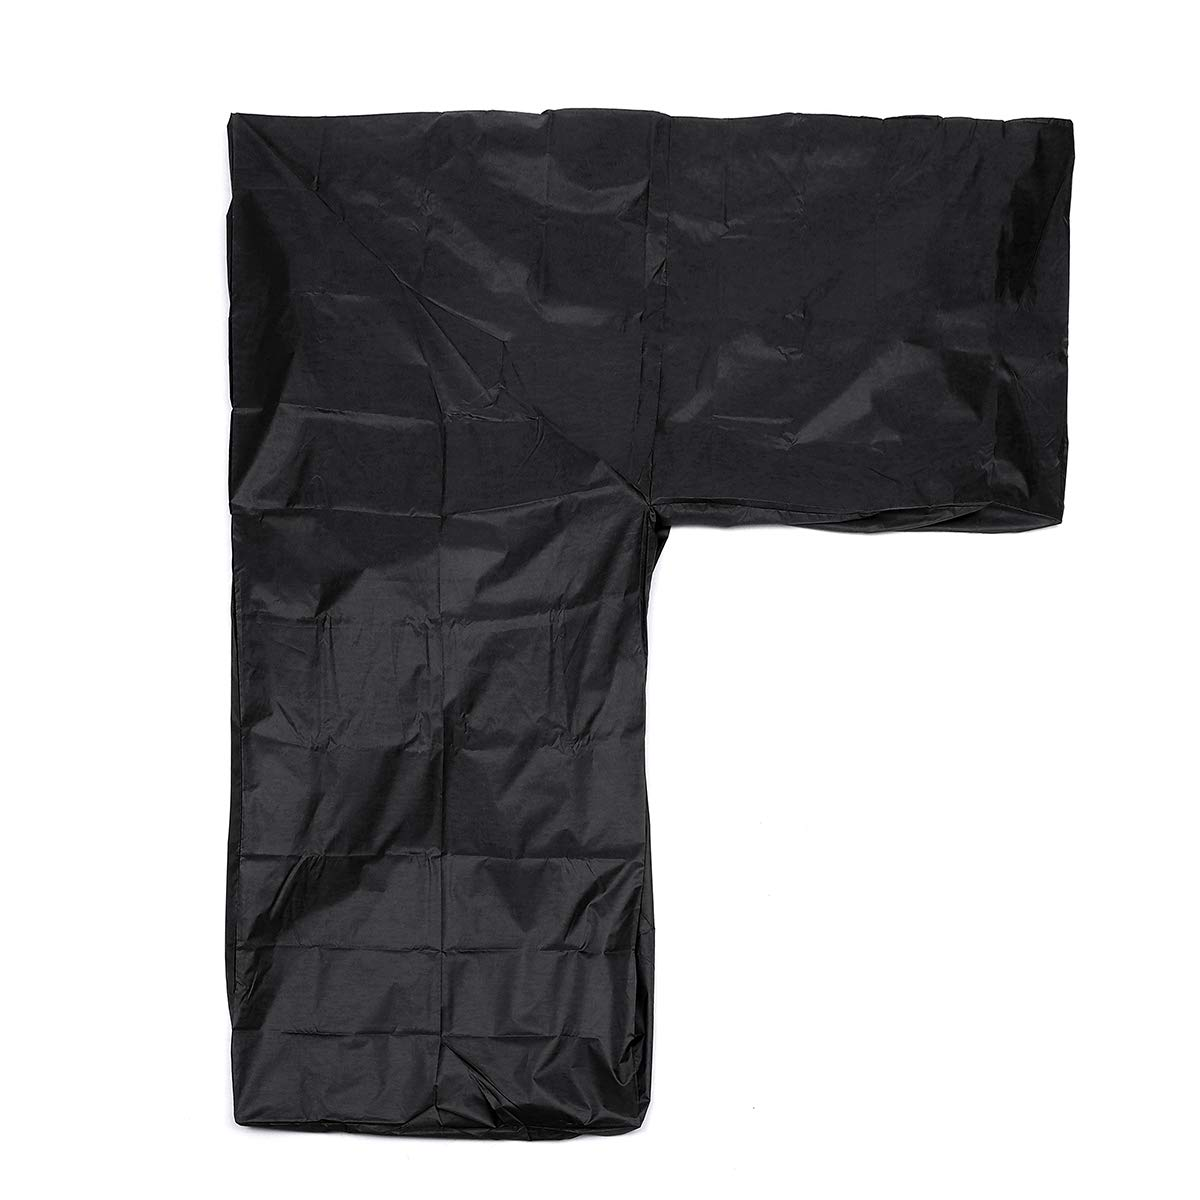 61'' X 37'' X 26'' Sofa Cover Black Polyester L Shape Waterproof Dustproof  Outdoor Patio Garden Furniture Protection Protective Cloth Covering